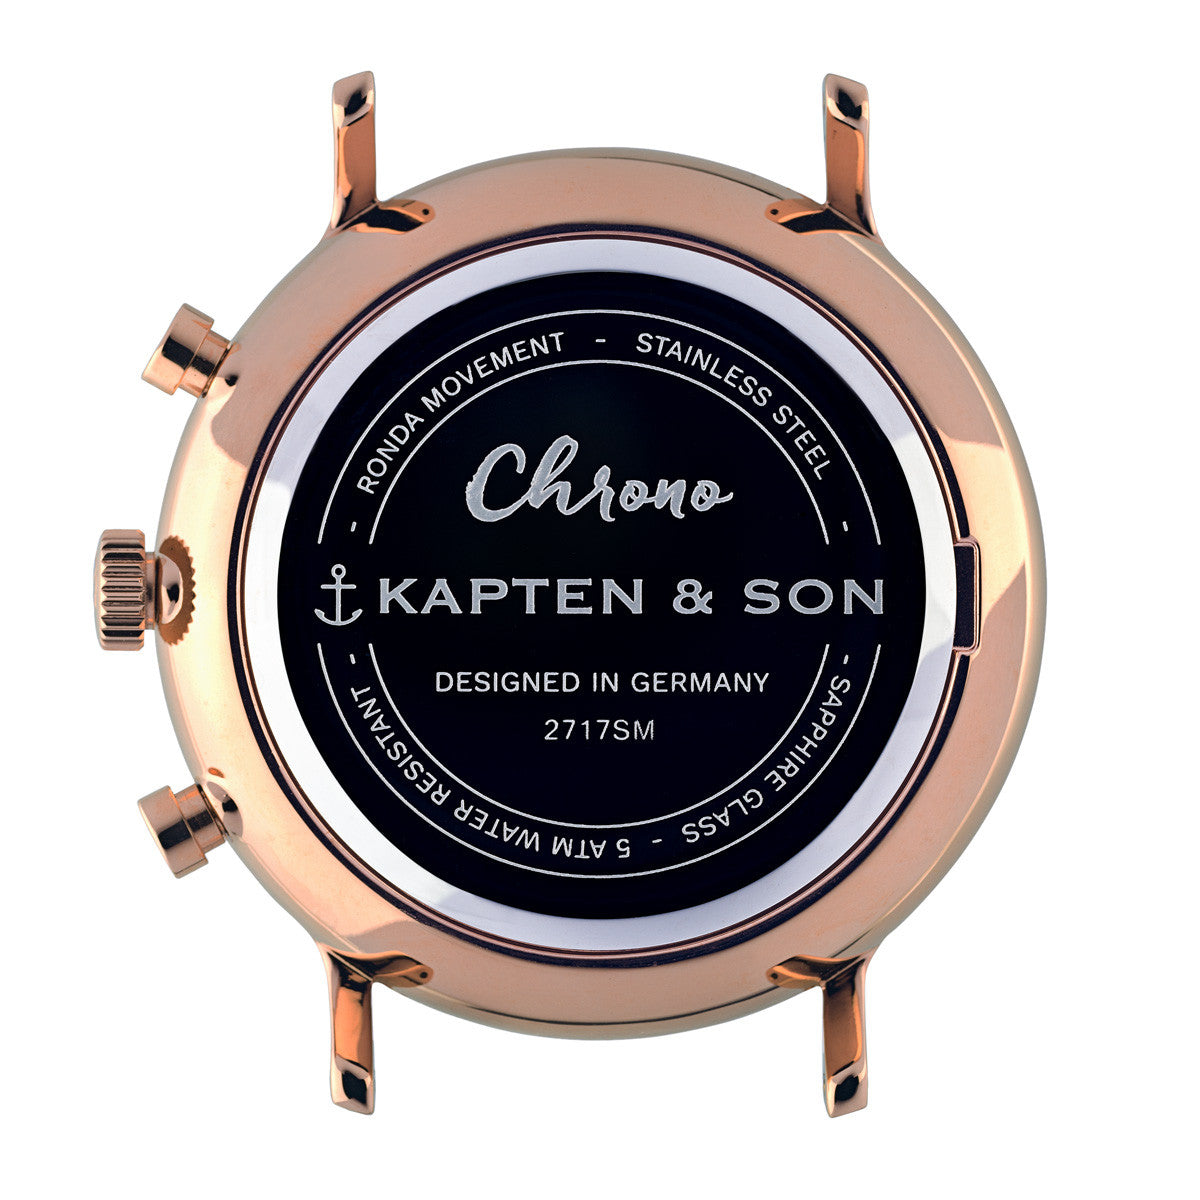 Chrono Rose Woven Leather - Kapten & Son - Japan